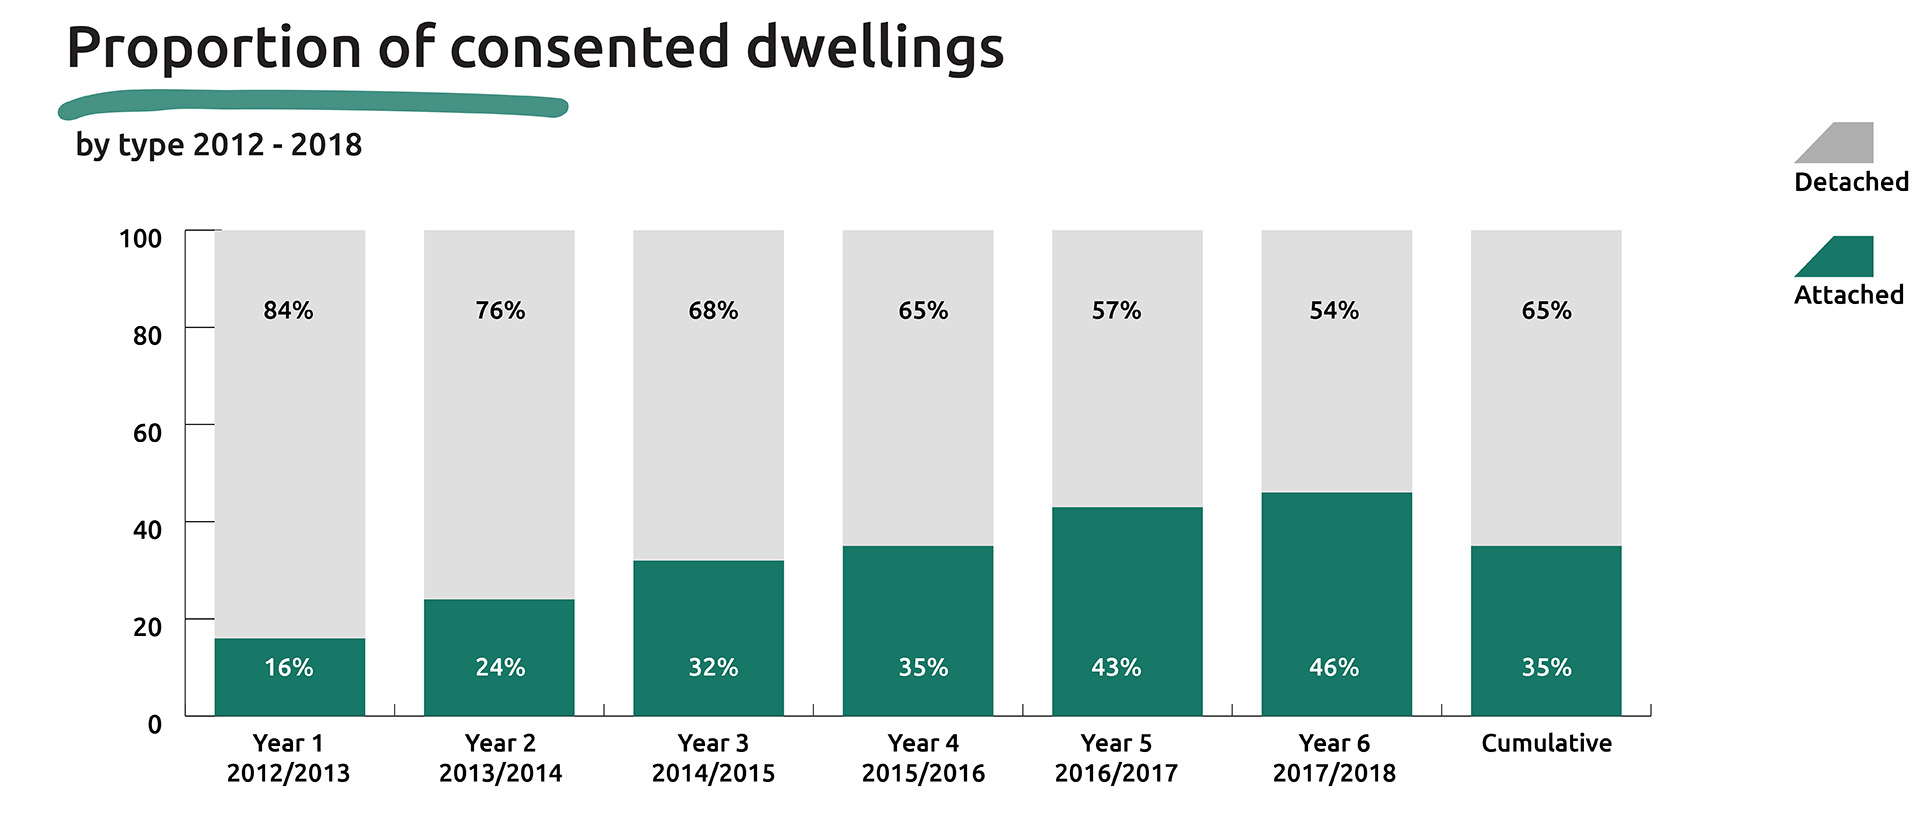 Graphic showing the proportion of consented dwellings by type from 2012 to 2018.